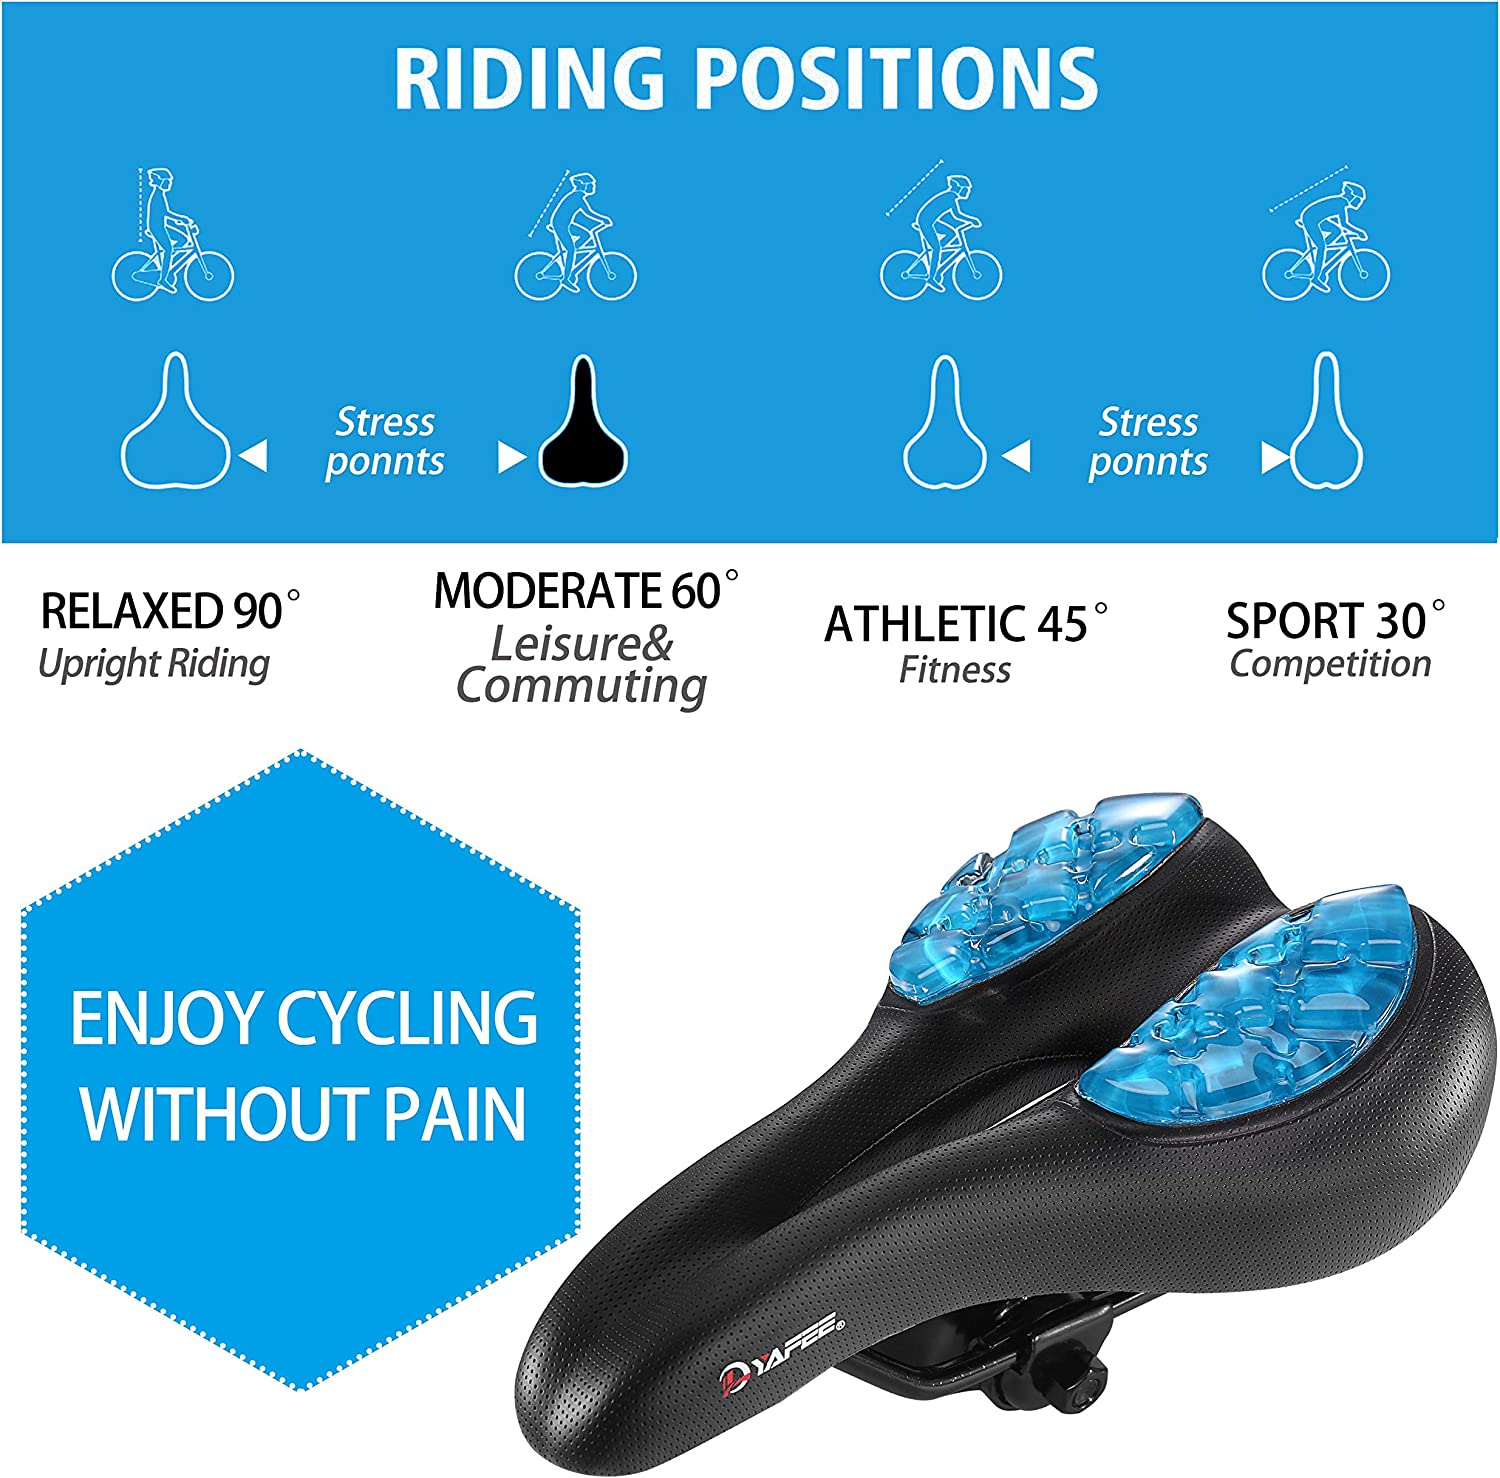 Improves Comfort for Mountain Bike Hybrid and Stationary Exercise Bike Selighting Mountain Bike Saddle Padded Bicycle Seat with Soft Cushion